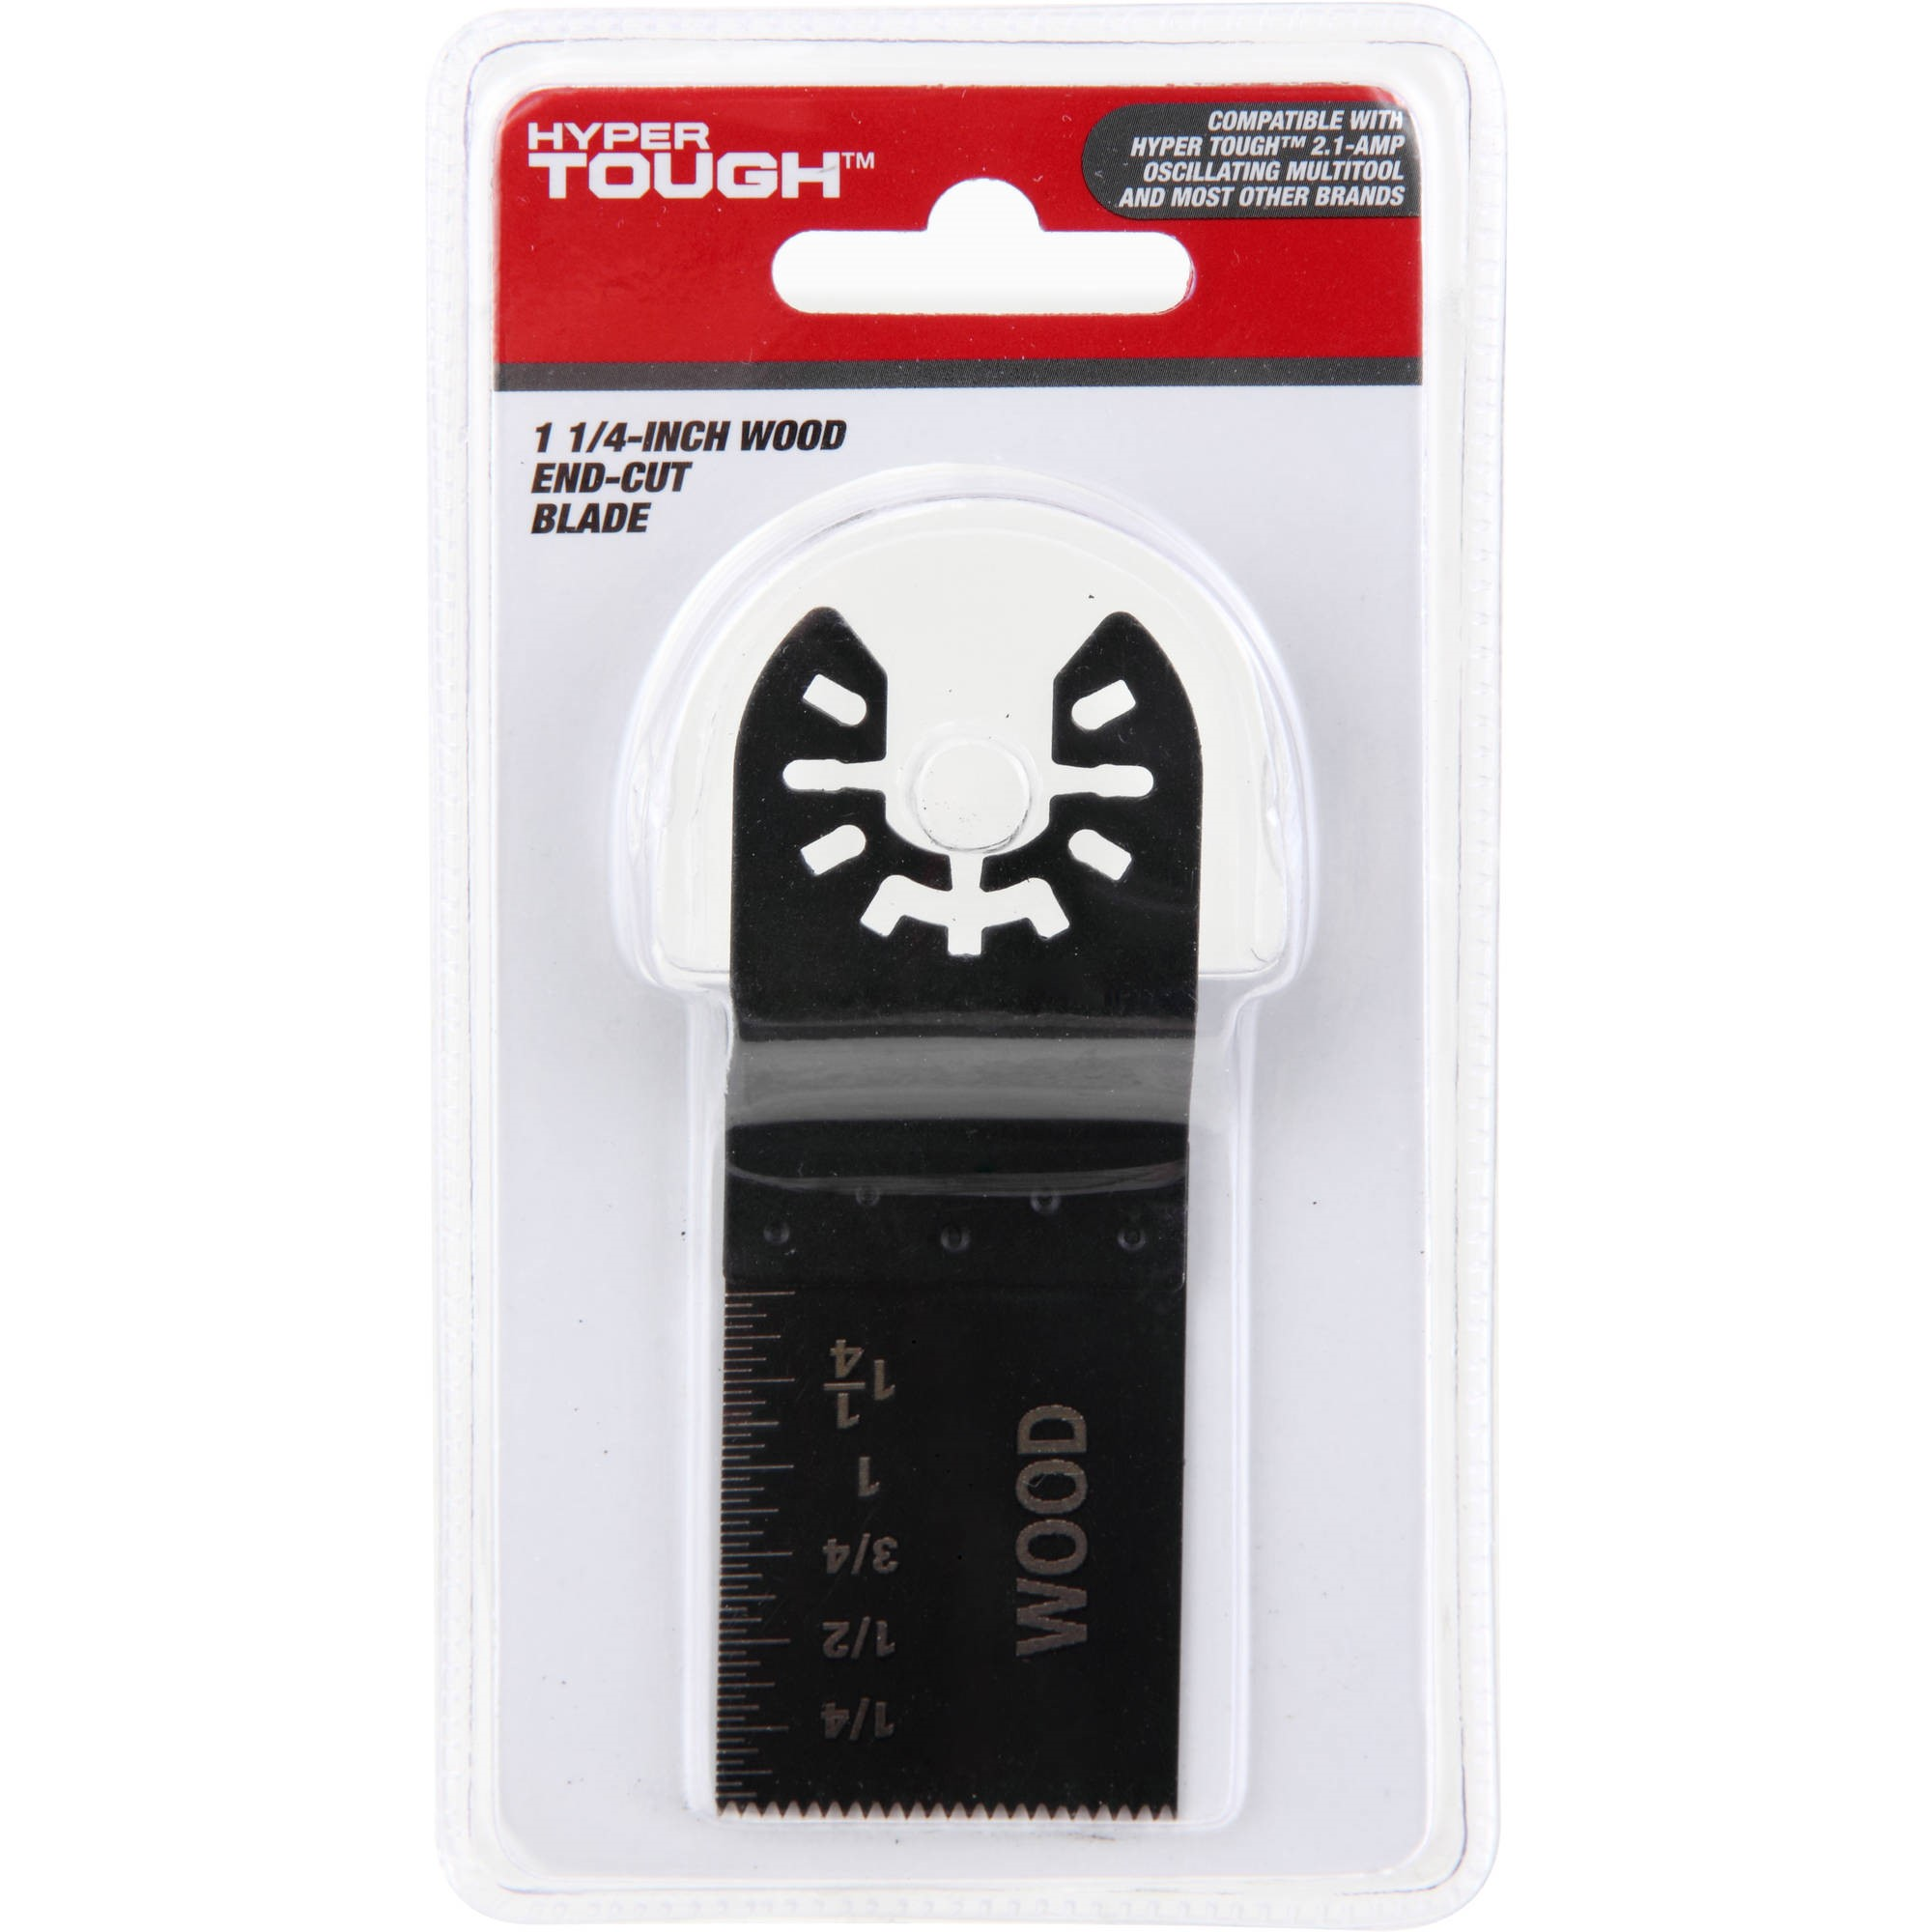 """Hyper Tough 1-1/4"""" Wood End-Cut Blade for Oscillating Tools"""